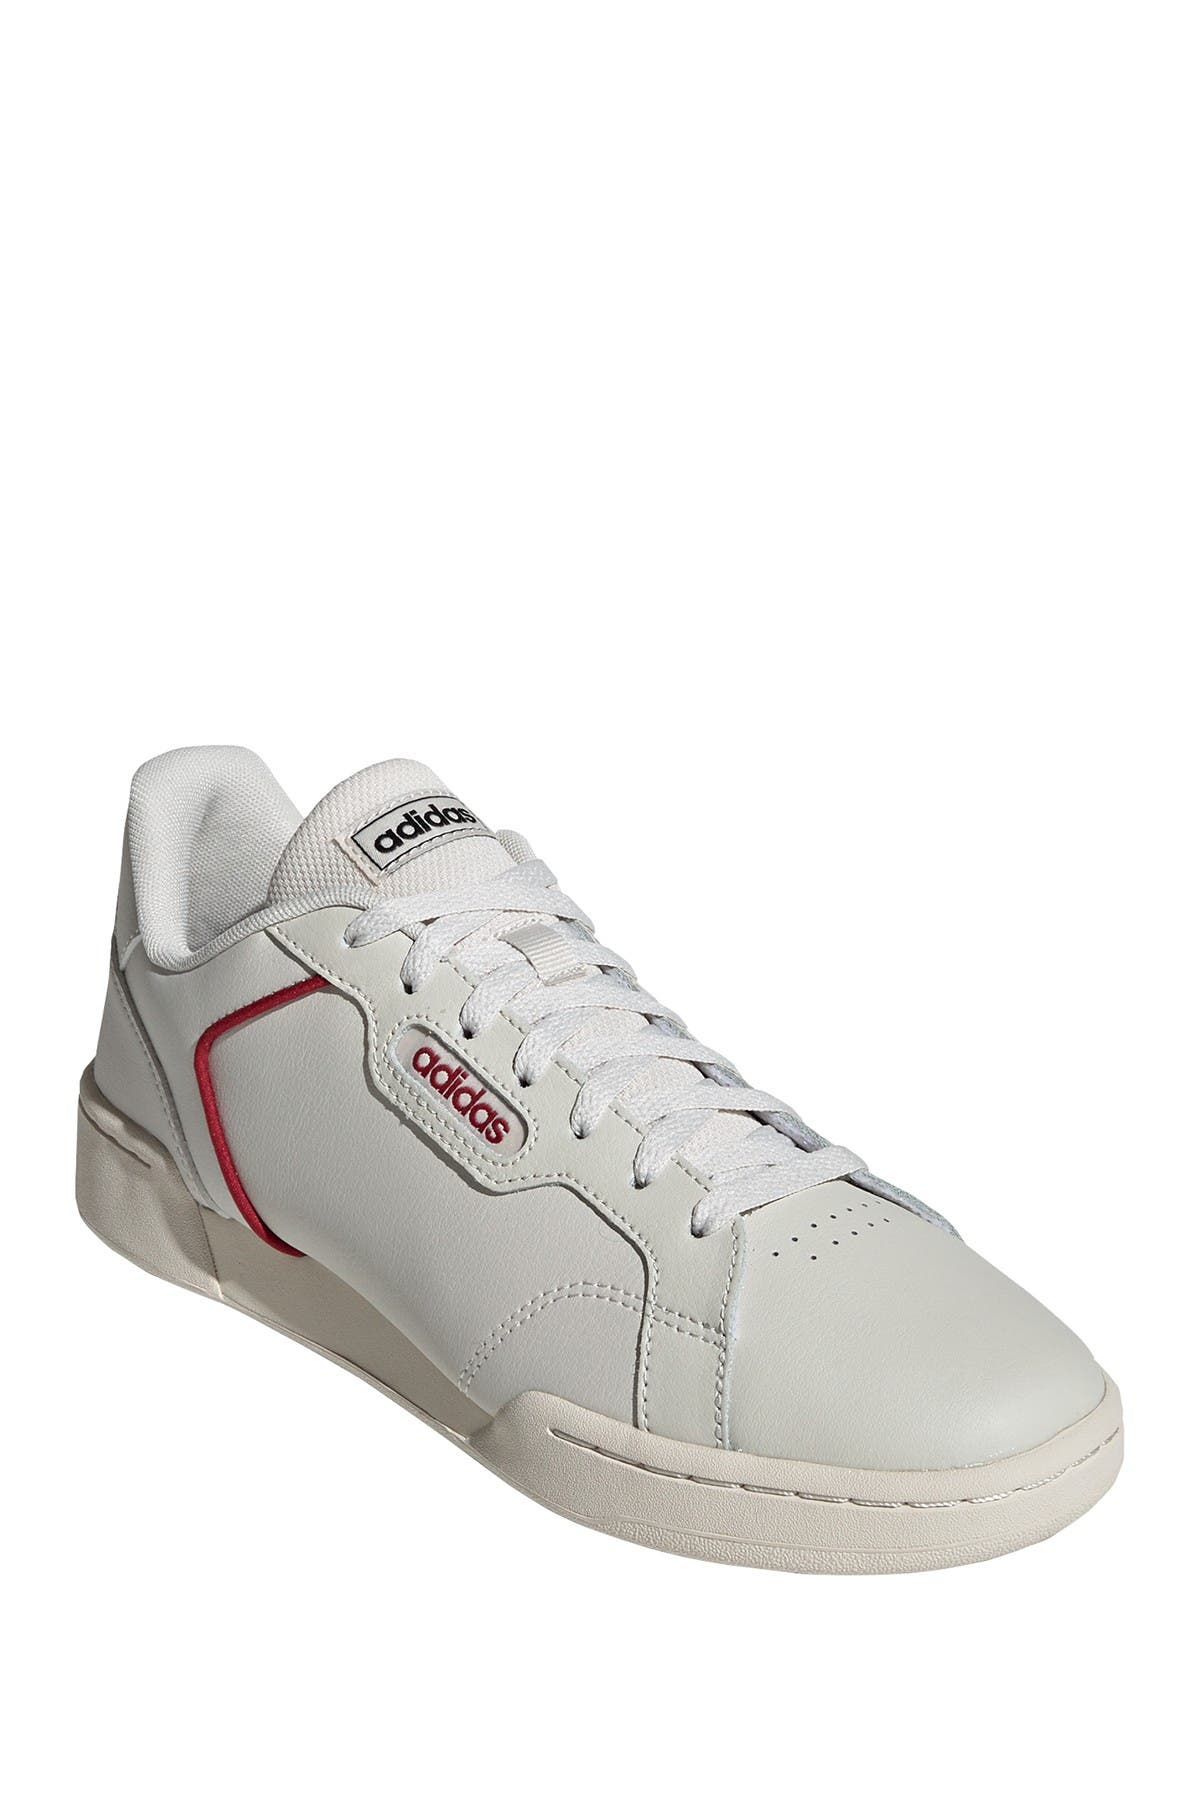 Image of adidas Roguera Leather Sneaker